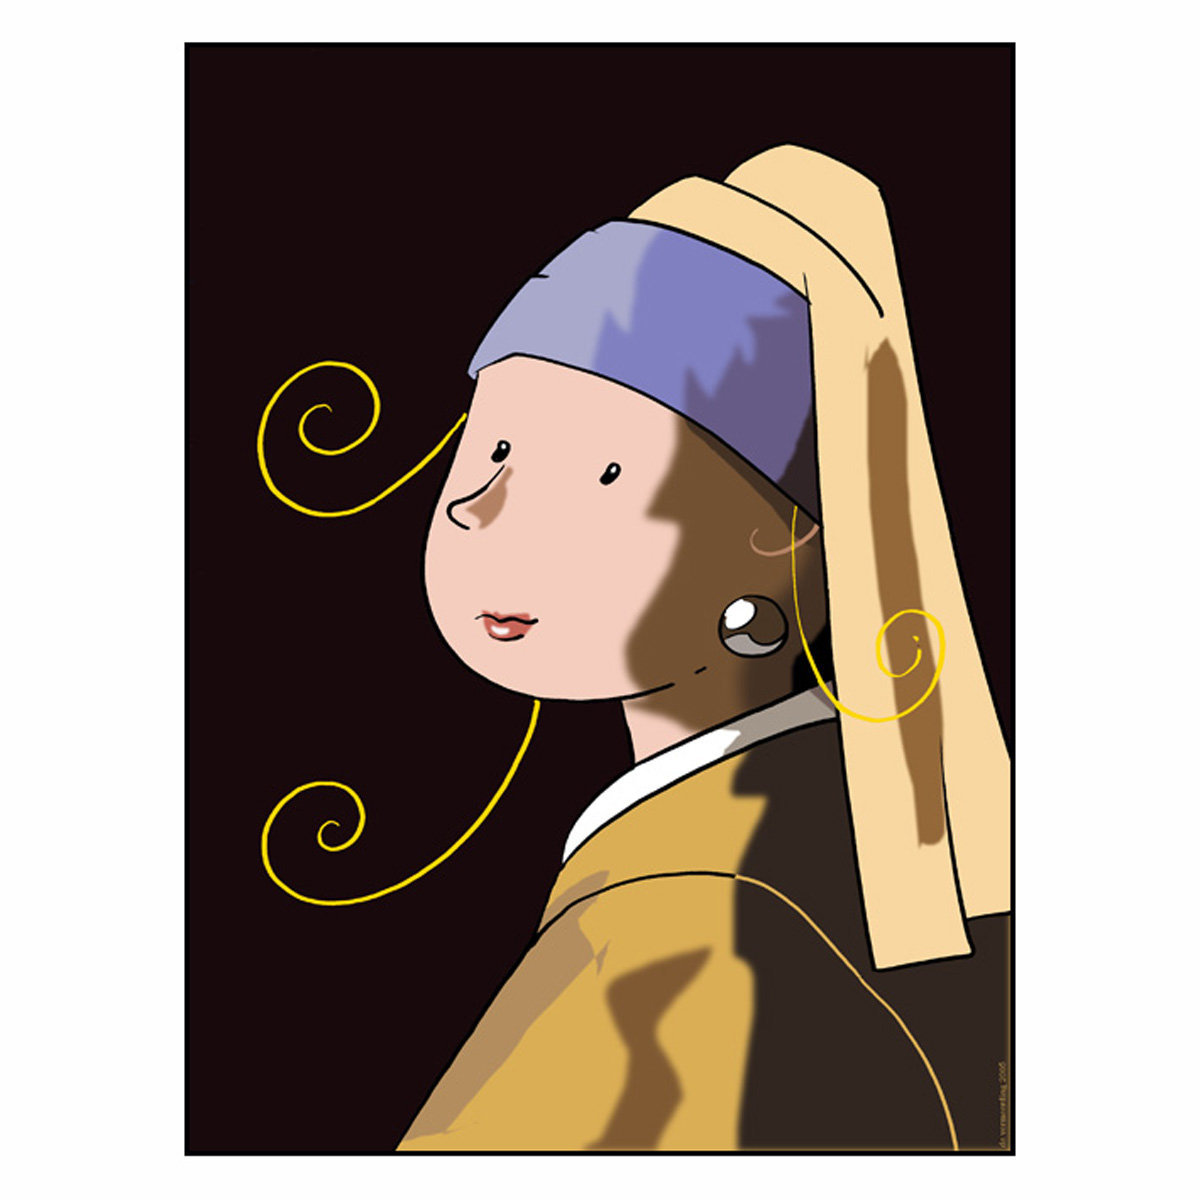 t girl with a pearl earring.jpg